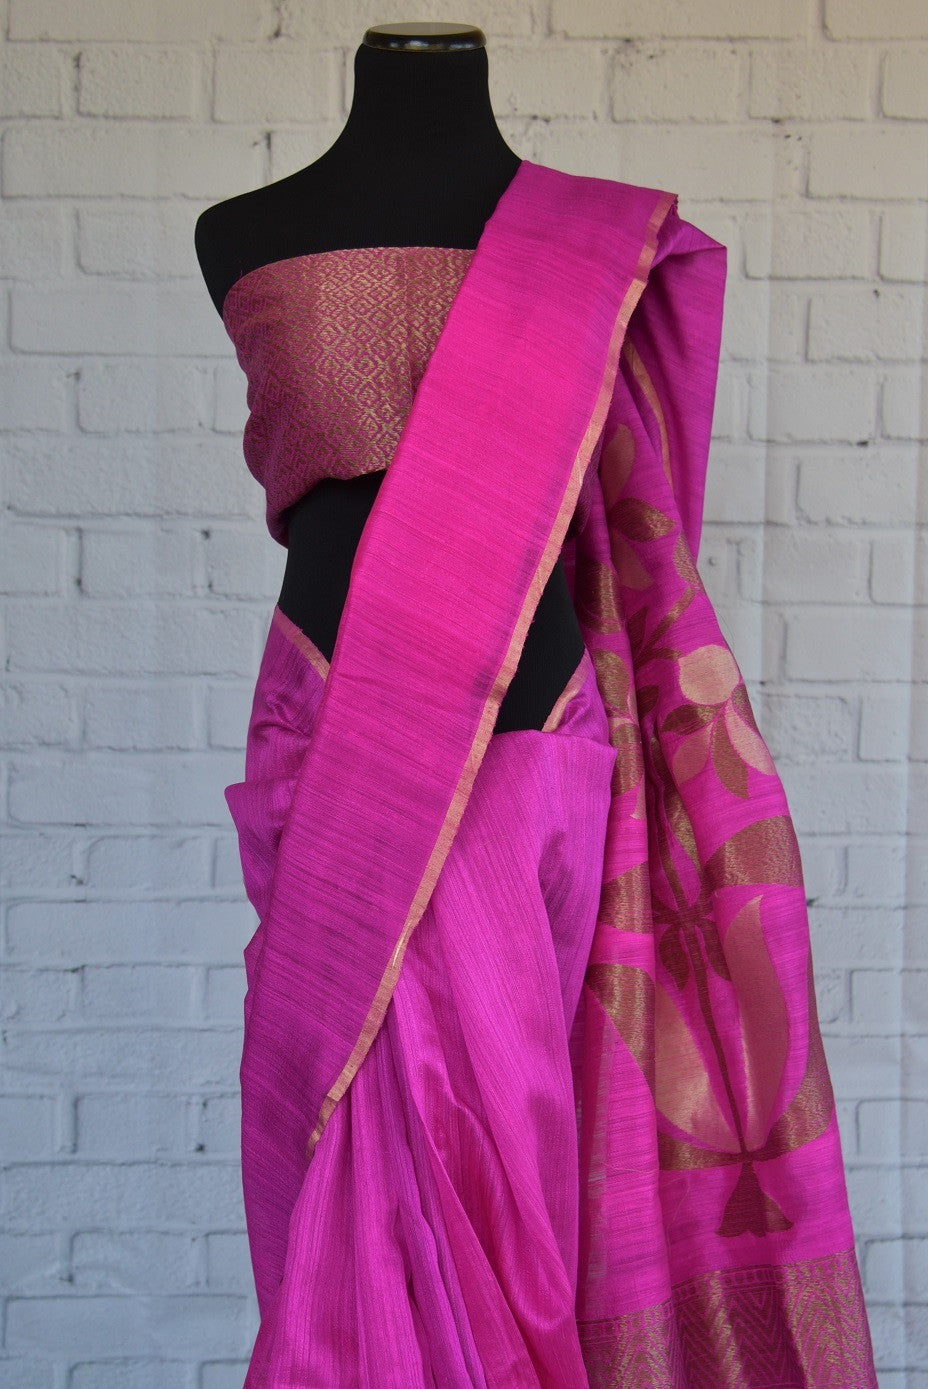 90C278 Vibrant rani pink matka Banarasi saree with classic zari pallu. The traditional saree, available online in USA at our store - Pure Elegance is a lovely pick for Indian wedding functions.